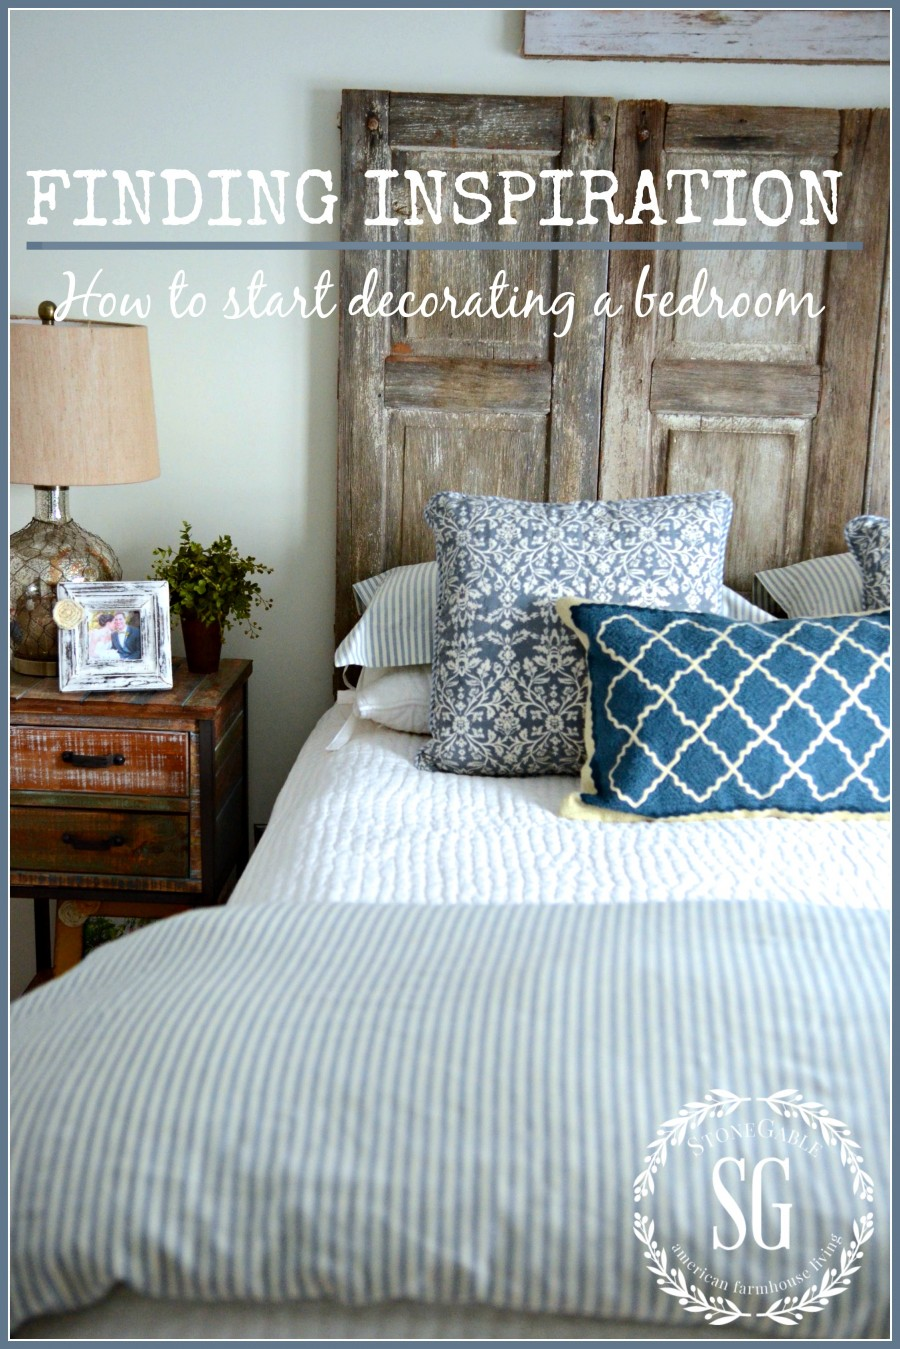 FINDING INSPIRATION~ how to start decorating a bedroom